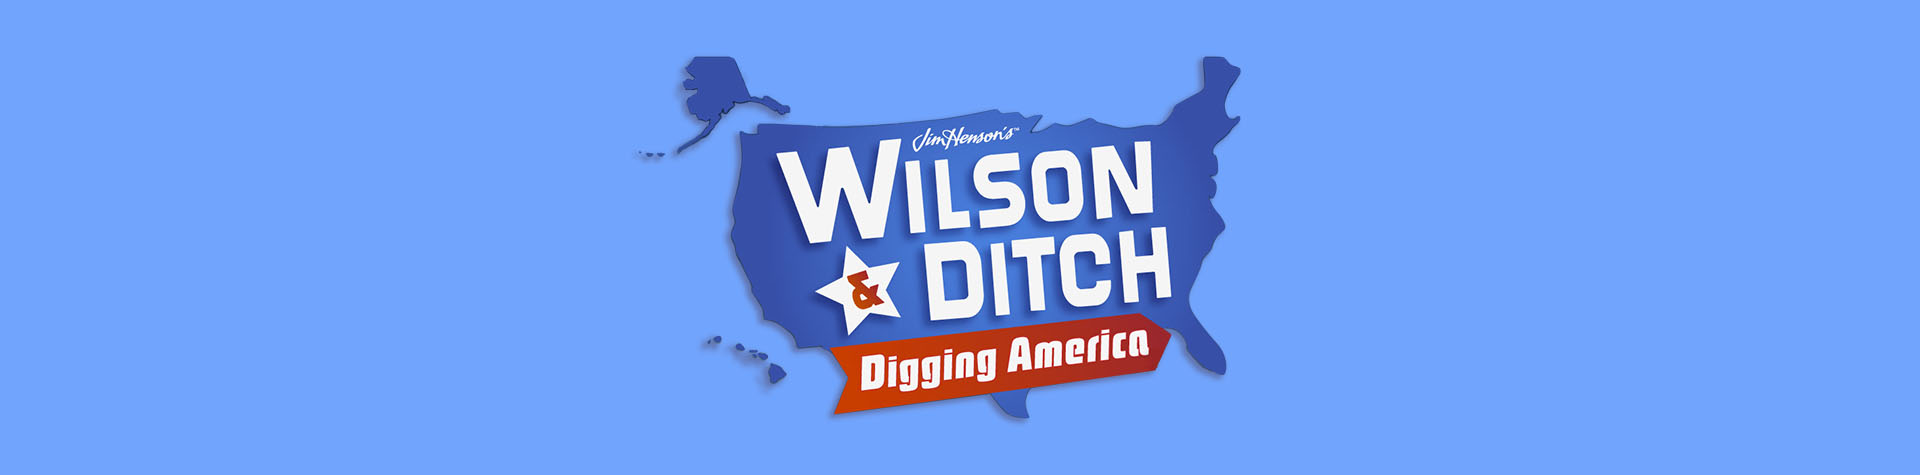 Wilson & Ditch -Large